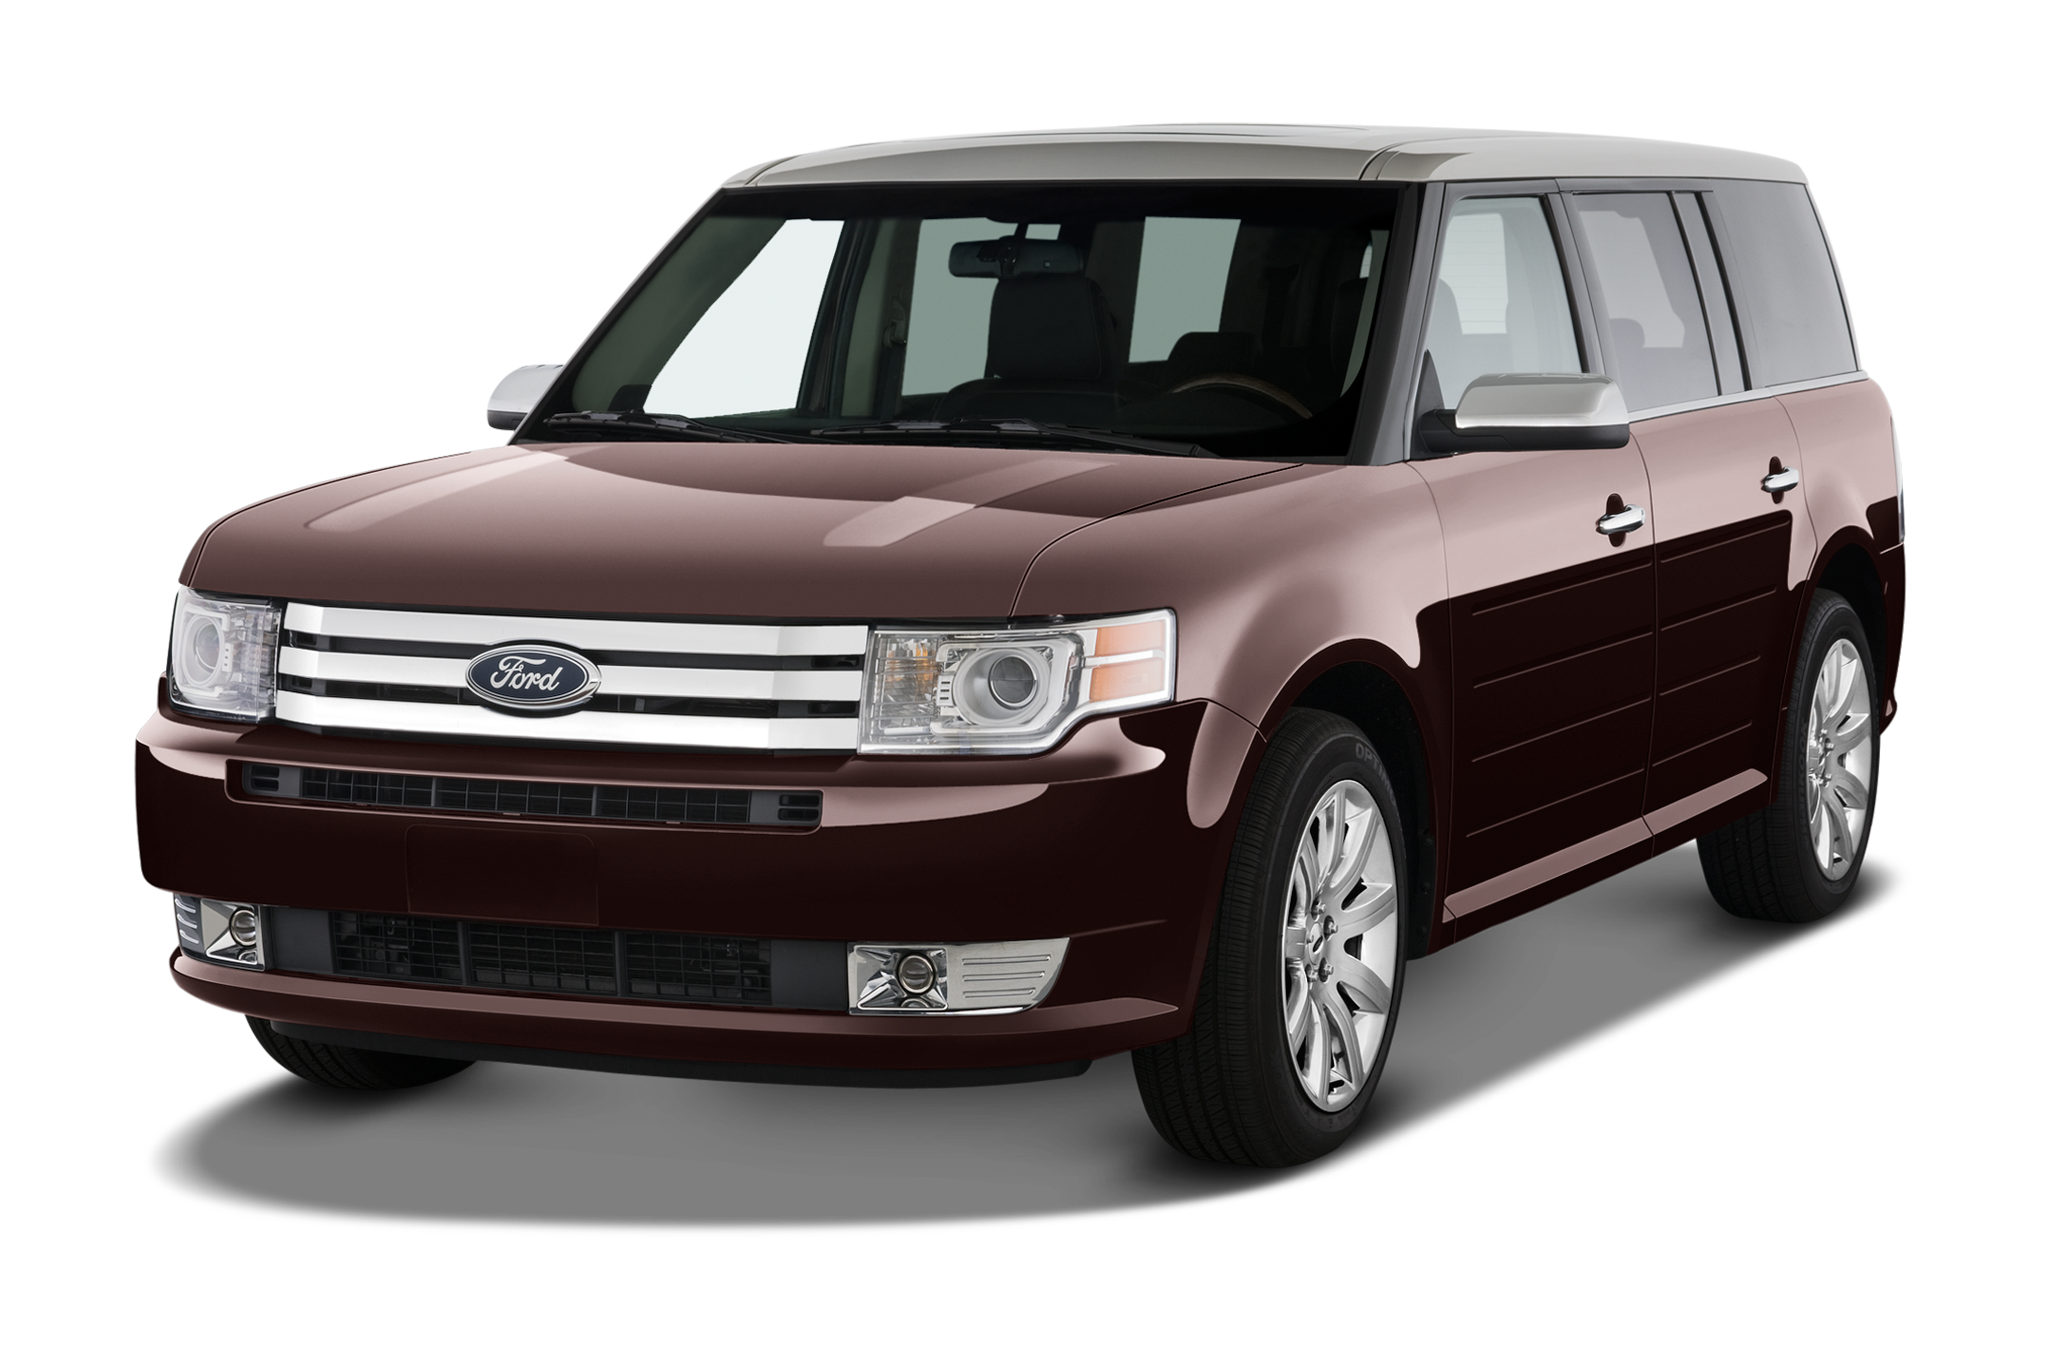 2010 ford flex ecoboost ford crossover suv review automobile magazine. Black Bedroom Furniture Sets. Home Design Ideas